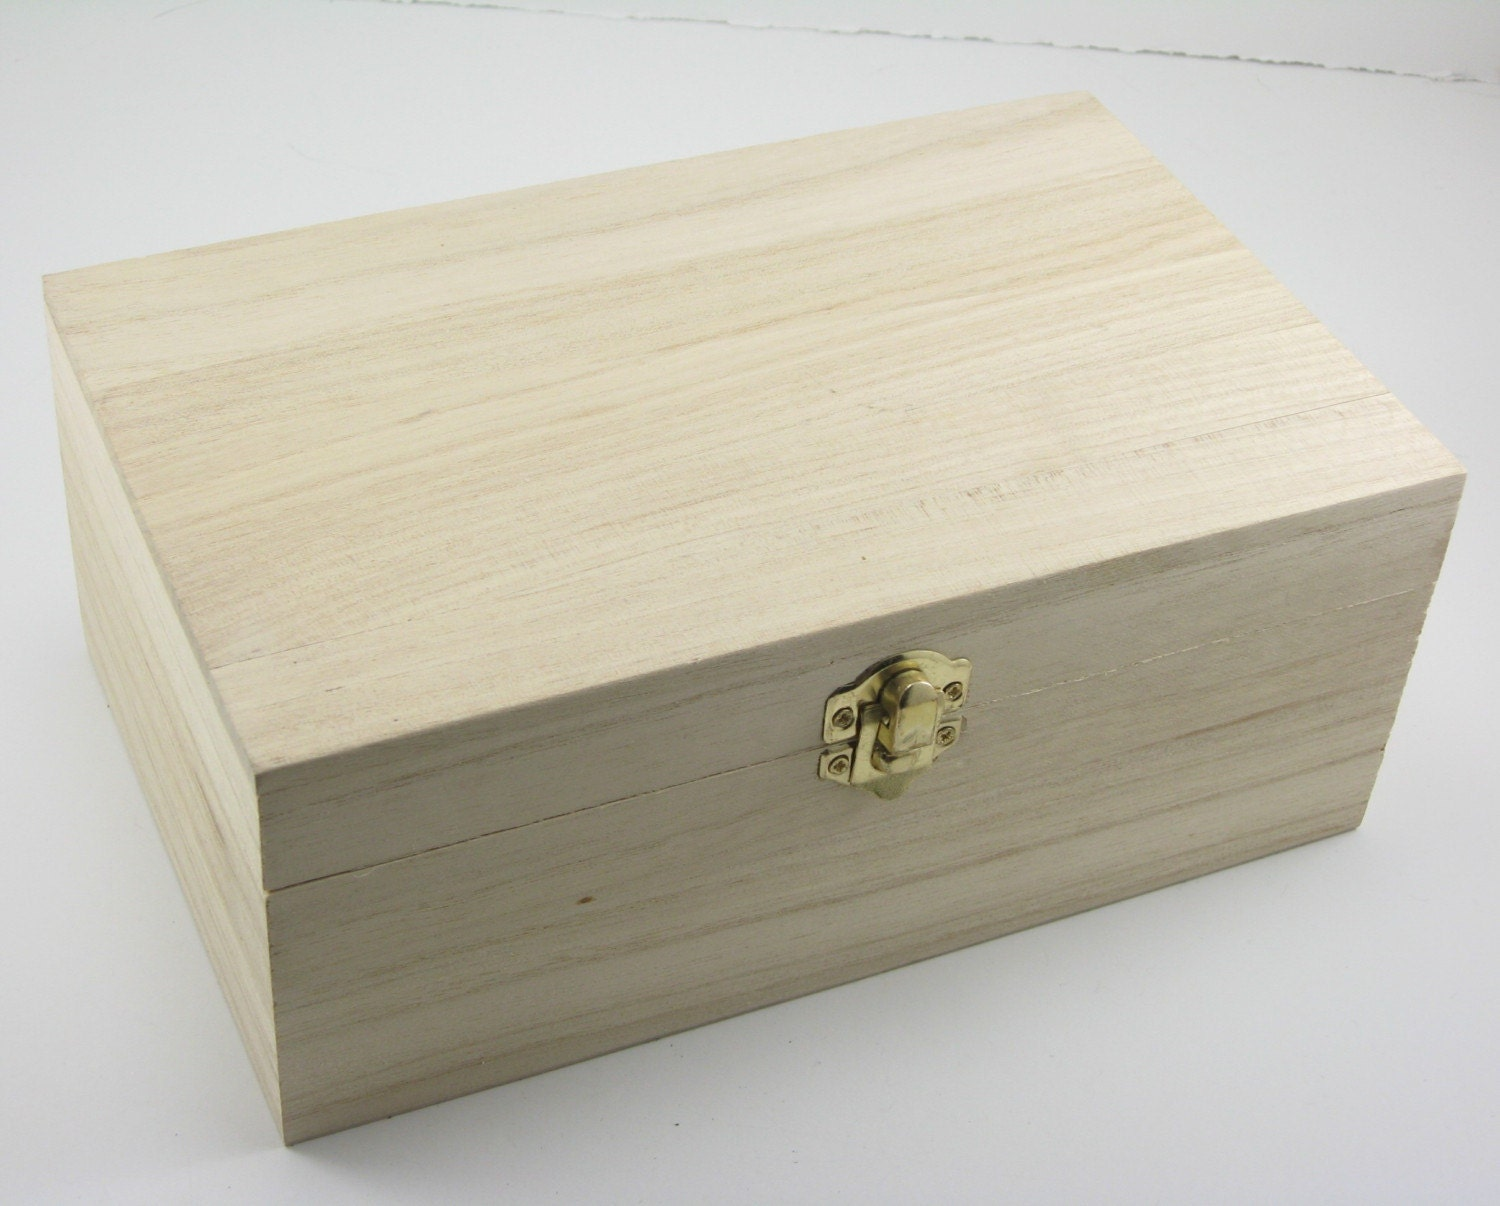 Unfinished Hinged Wood Box: 6 x 4 x 2 inches  |Large Unfinished Wooden Boxes